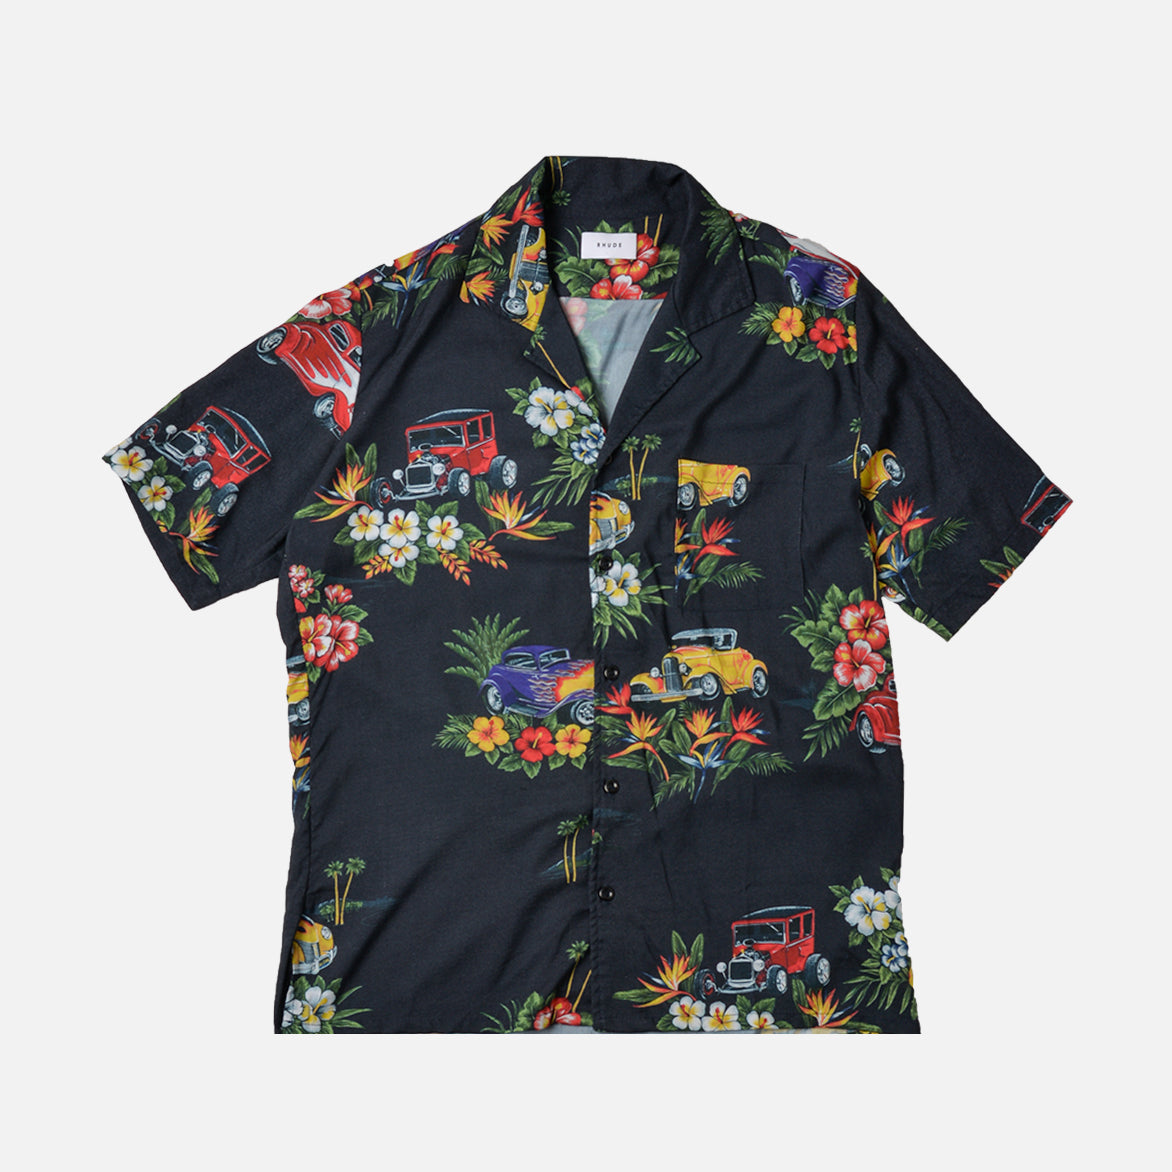 HAWAIIAN SHIRT GIRL - NAVY